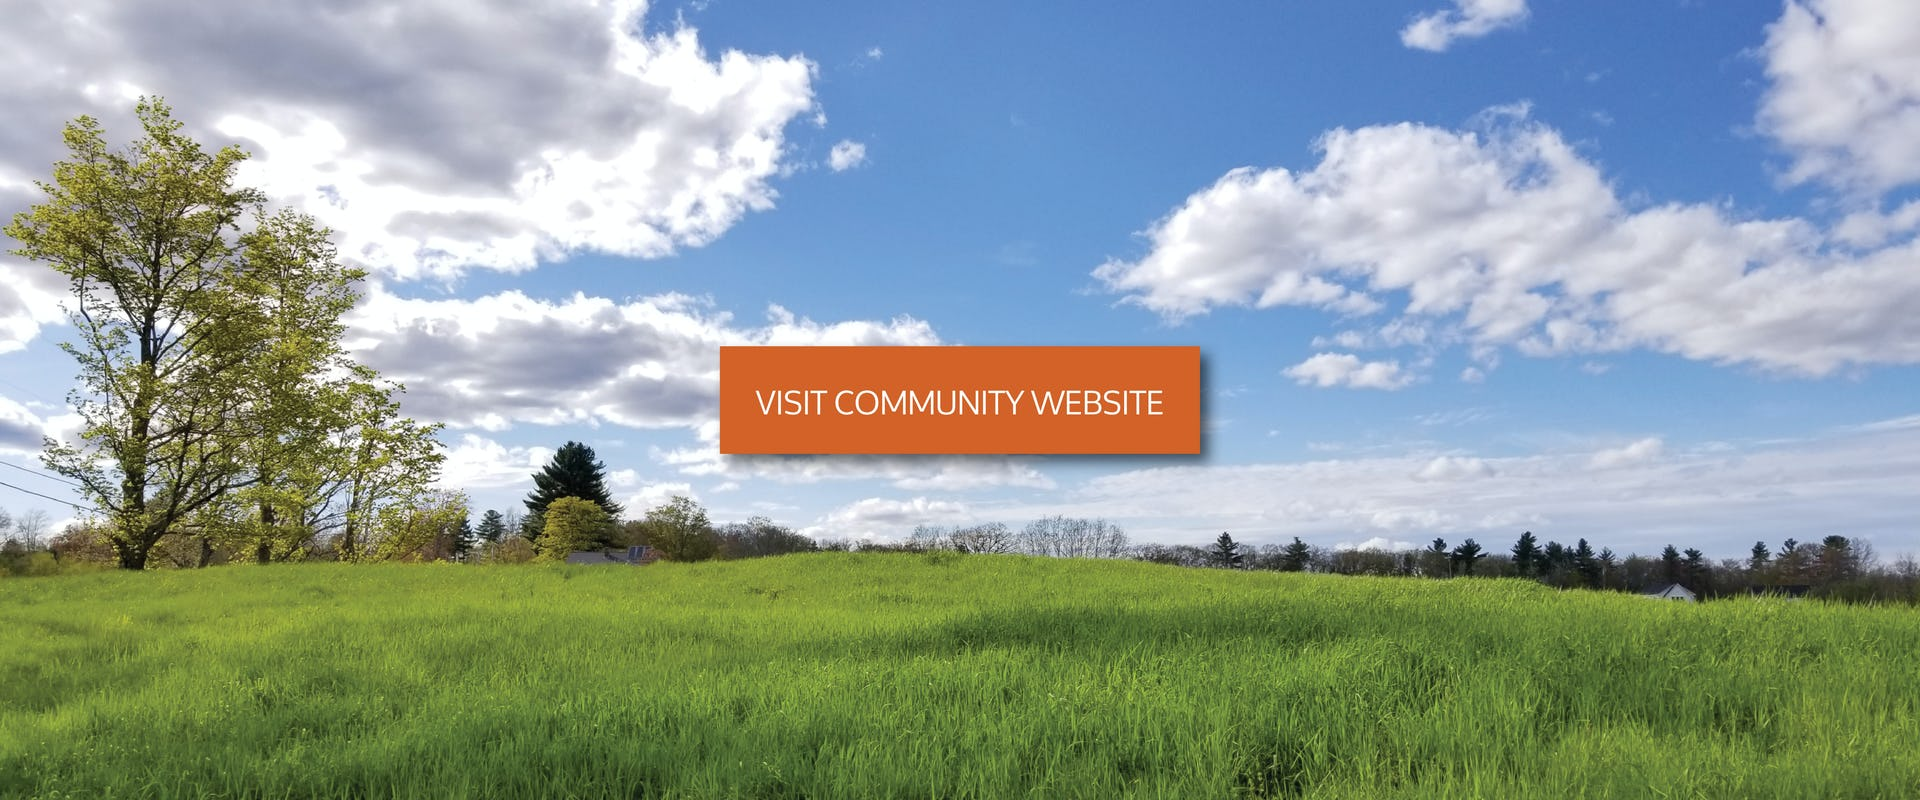 field in summer with visit community website button